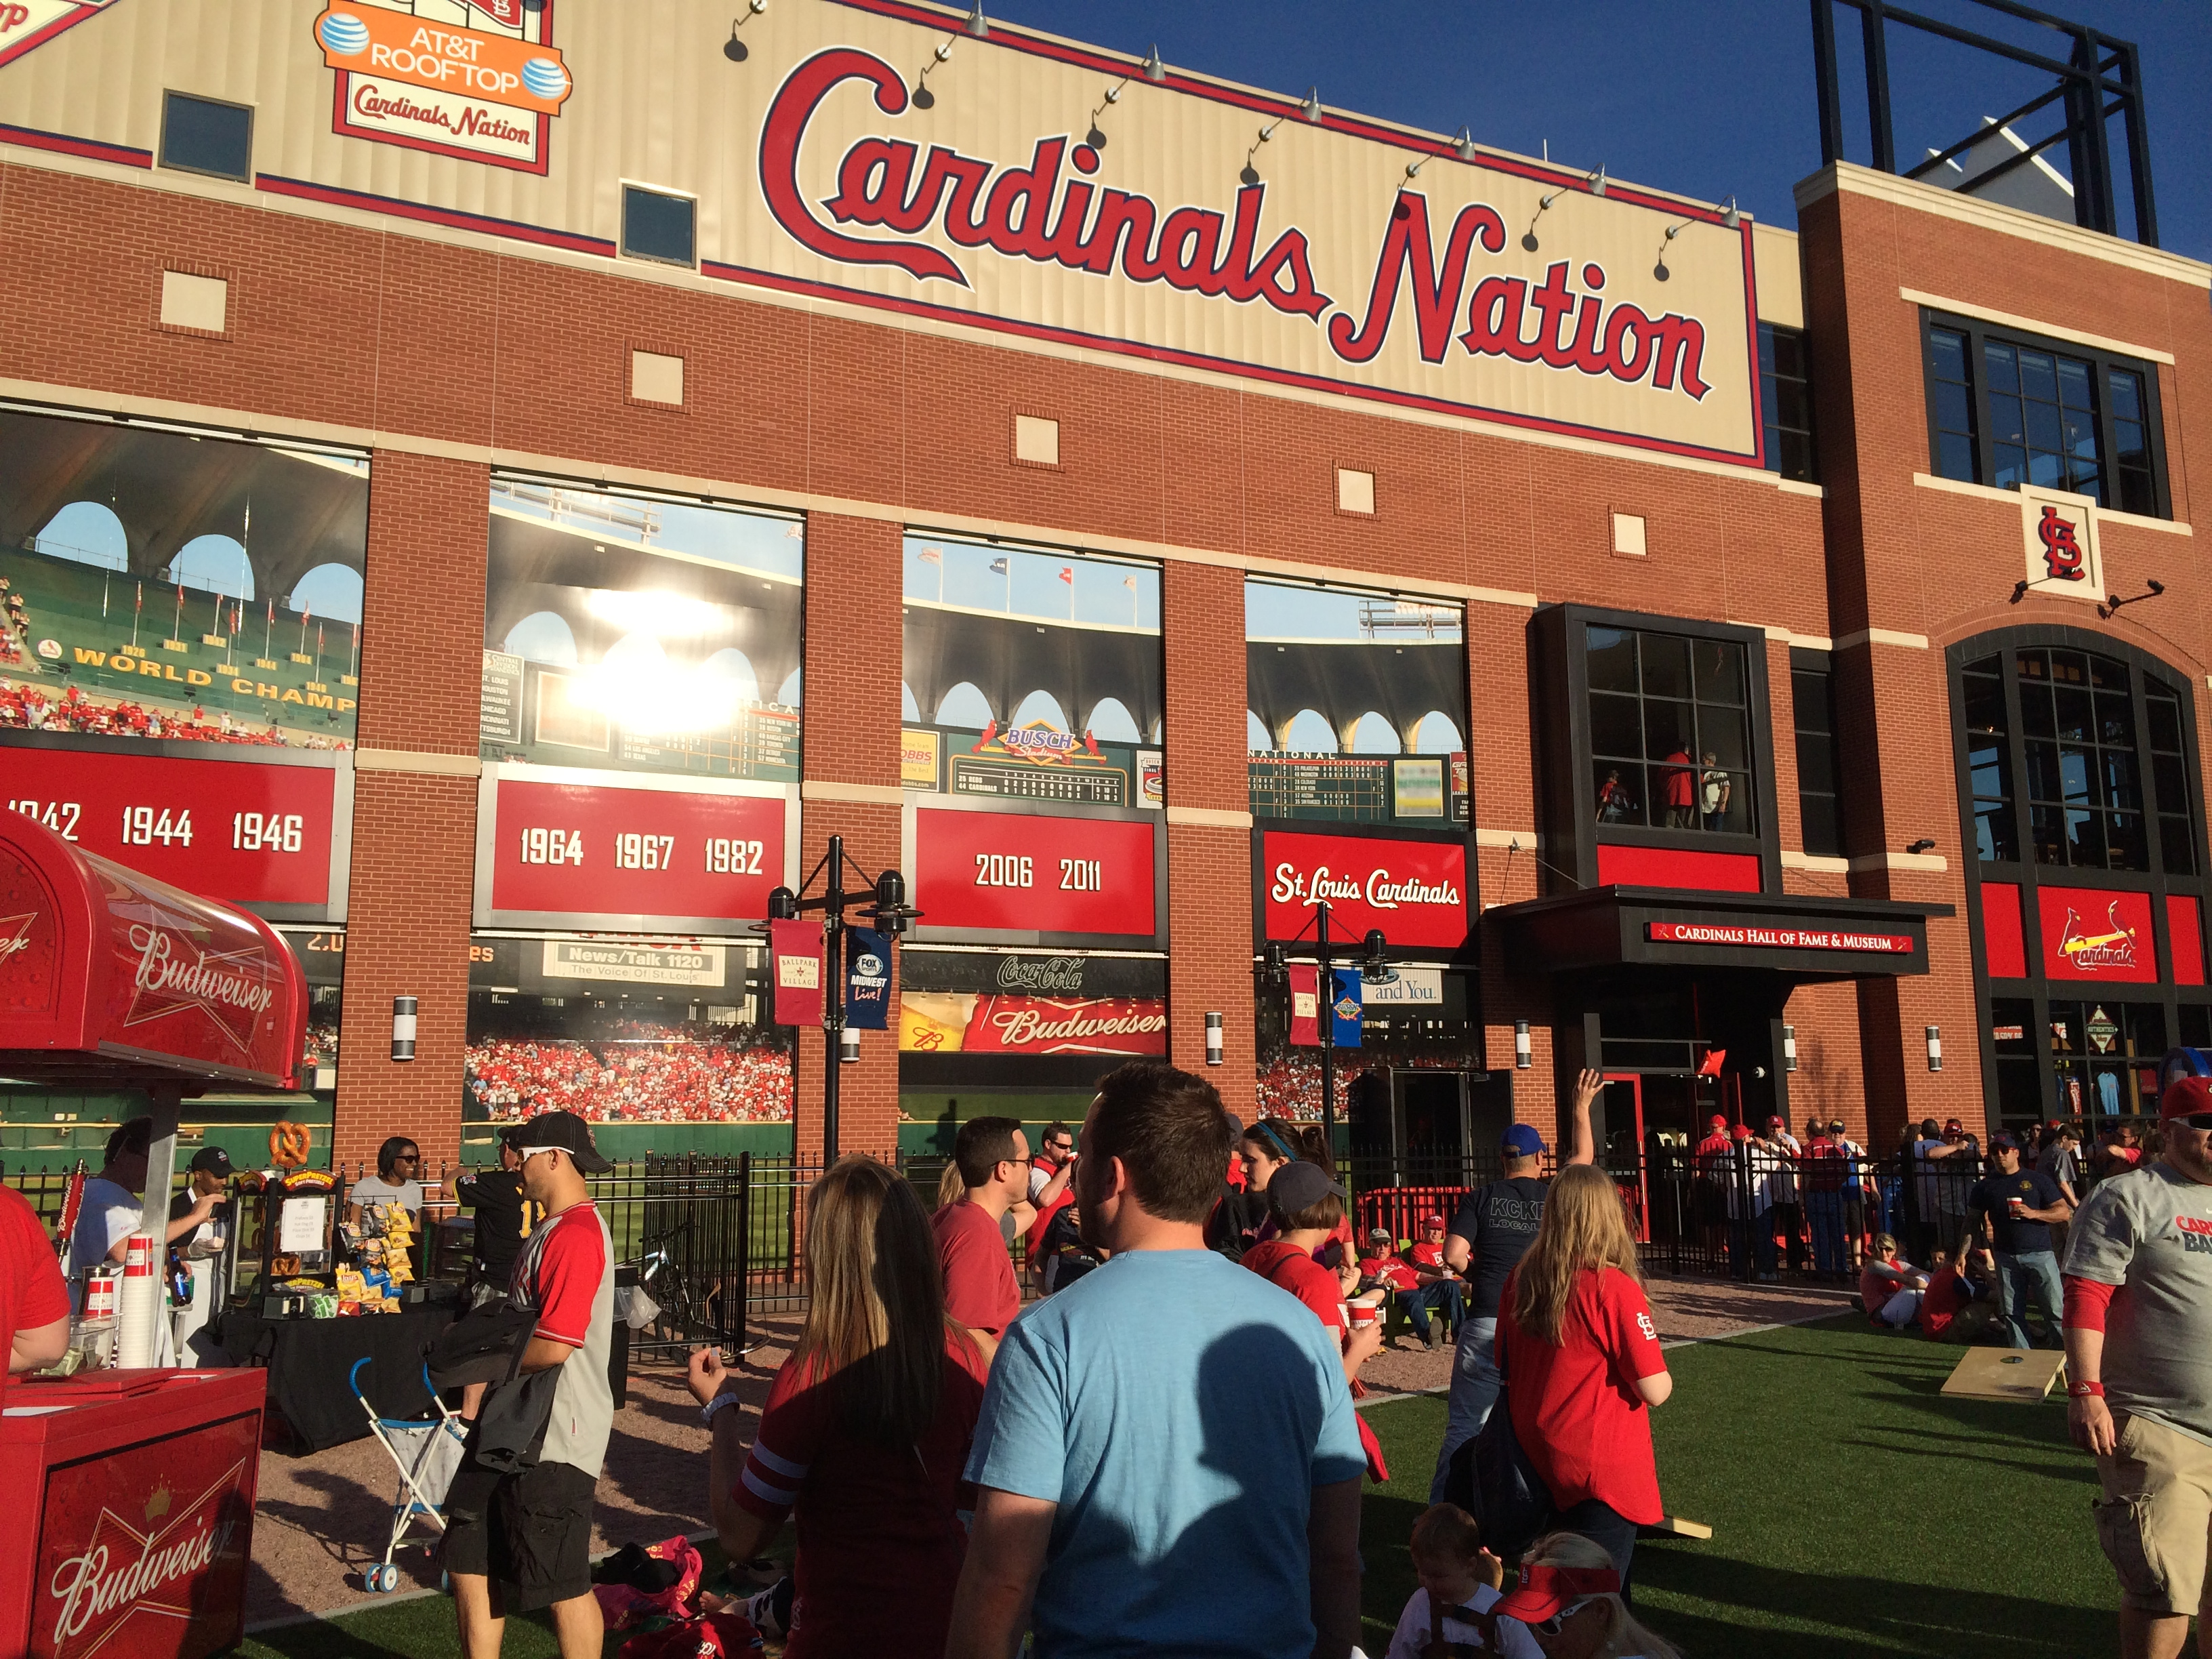 Seeing Red How To Fly With The Cardinals In St Louis Off The